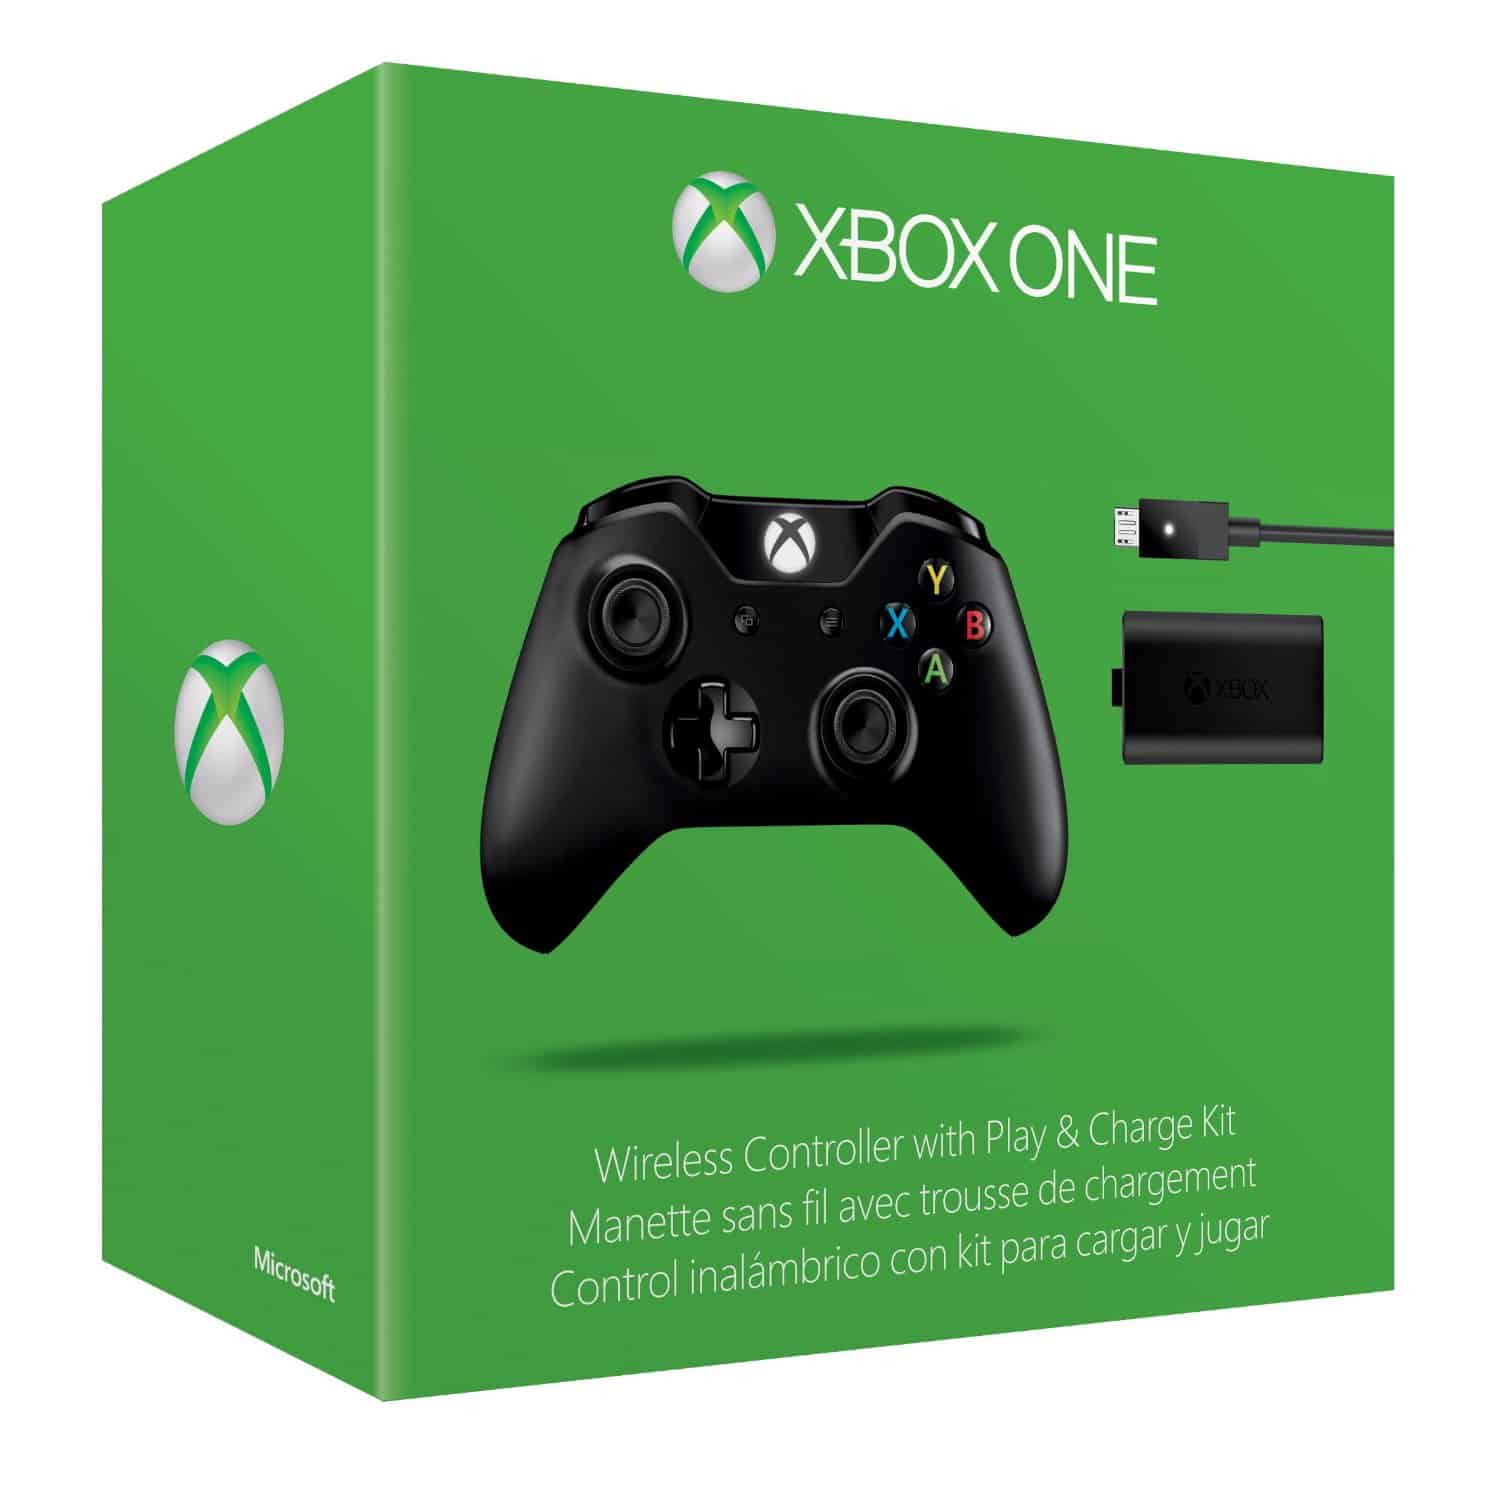 Xbox One Wireless Controller w/play & charge kit